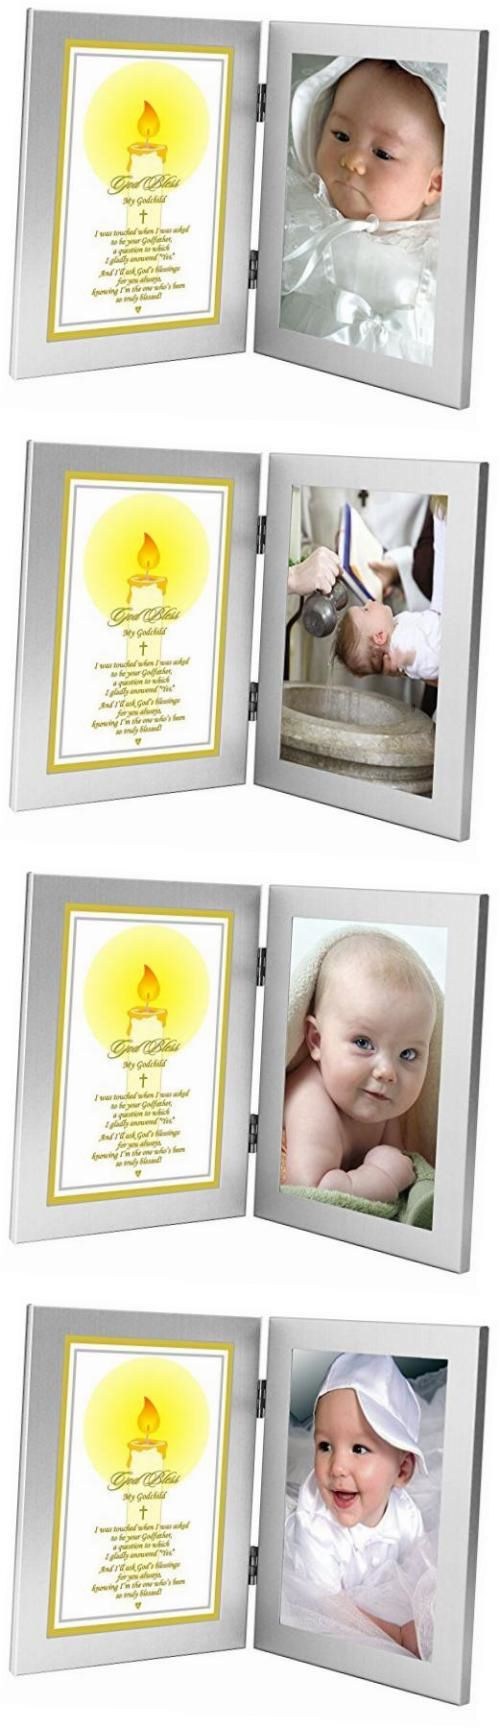 Baby Picture Frames 117392: Godchild Baptism Or Christening Gift From Godfather – Godchild Baptism Keepsake -> BUY IT NOW ONLY: $40.3 on eBay!